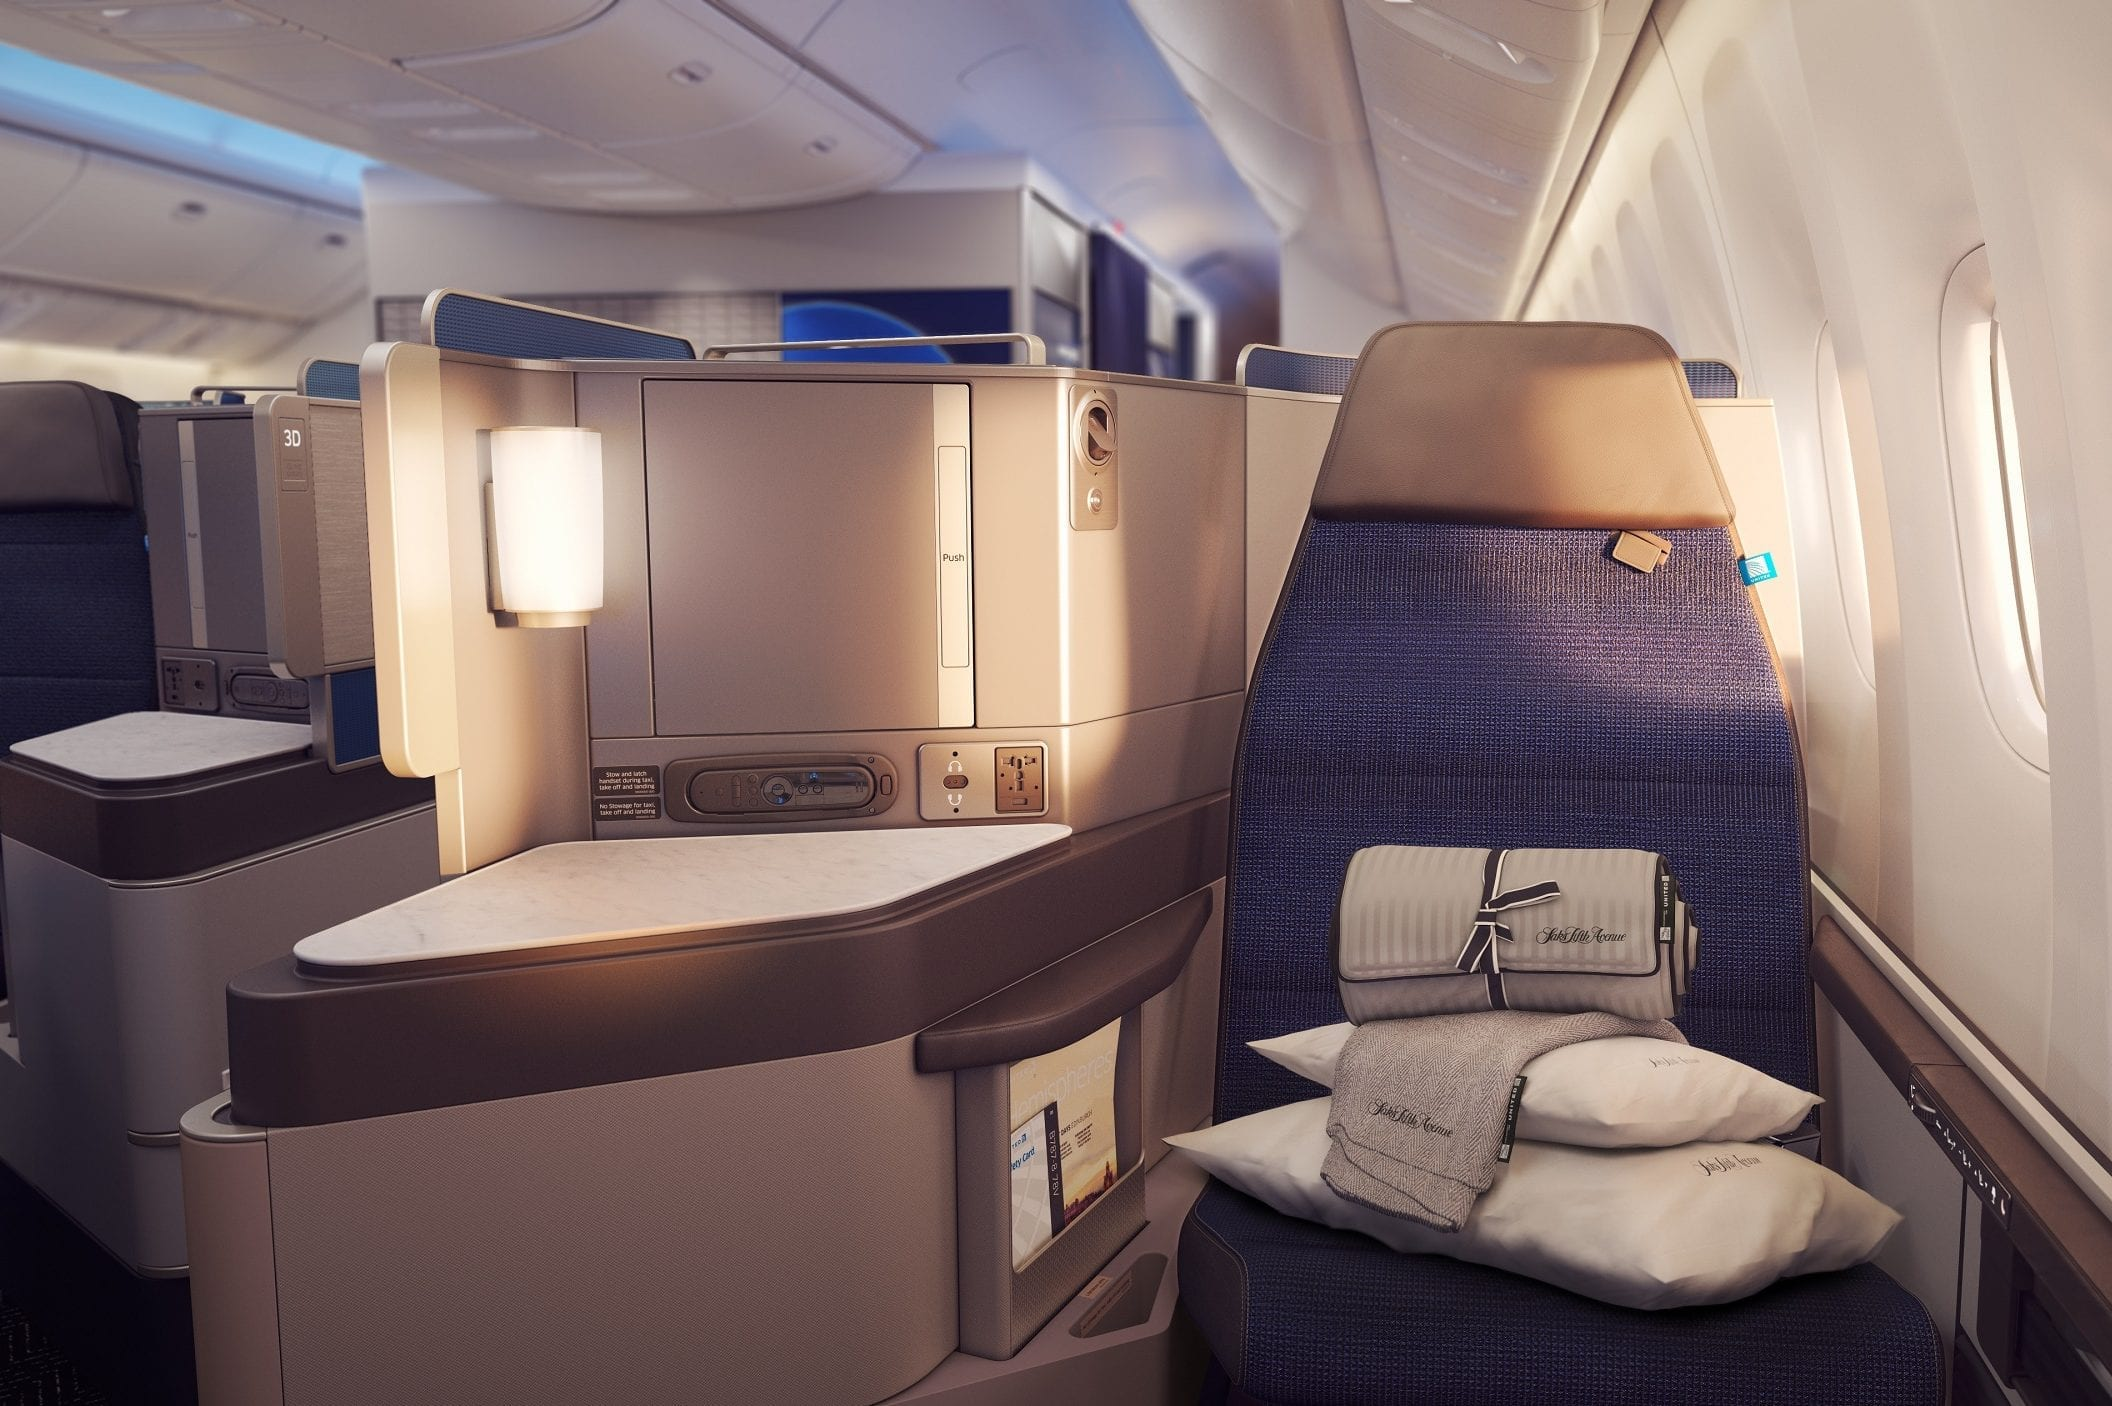 Awesome Deal: Buy United Miles For Roughly 1 Cent per Mile...